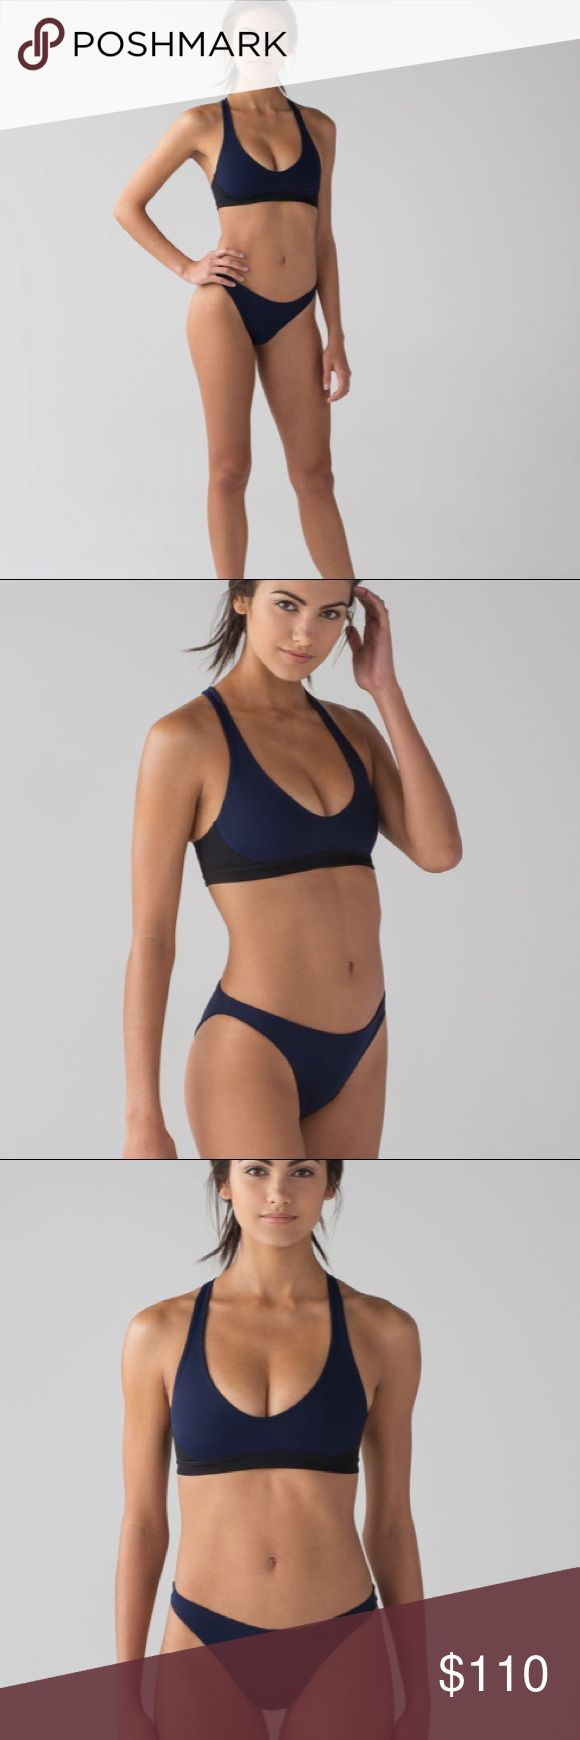 • Lululemon • Uncharted Waters Bikini Swim 6 Navy - Lululemon - Uncharted Waters Bikini Swim  - Top & Bottom - Top: Open Racerback with UV Protection - Bottom: mid Rise, skimpy Bum Coverage, High Cut Leg - Esca Fabric - Euro Navy / Black - Size 6 - New with Tags lululemon athletica Swim Bikinis